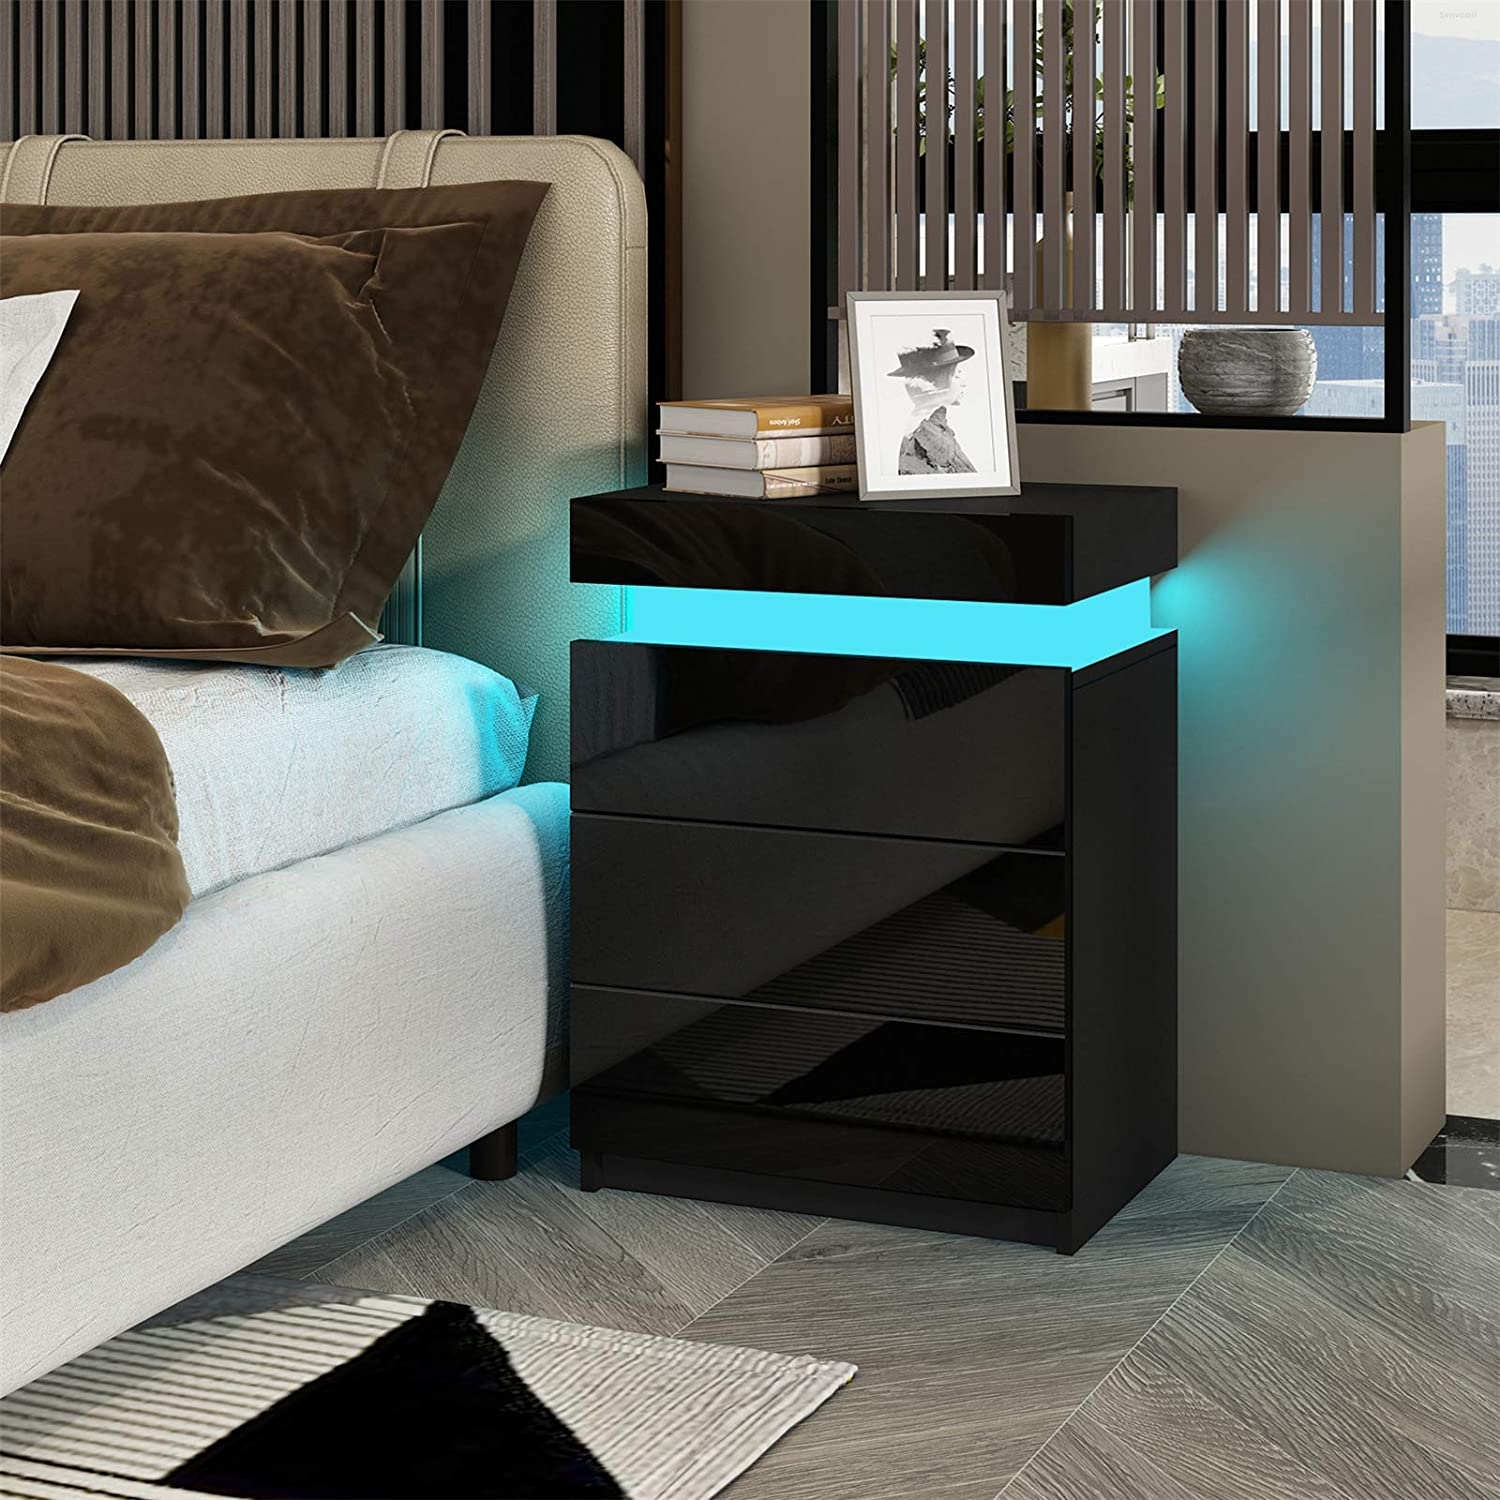 High Gloss Modern Bedside Table Nightstand Storage Cabinet 3 Drawers with LED Light for Bedroom Living Room Senvoziii White Bedside Table